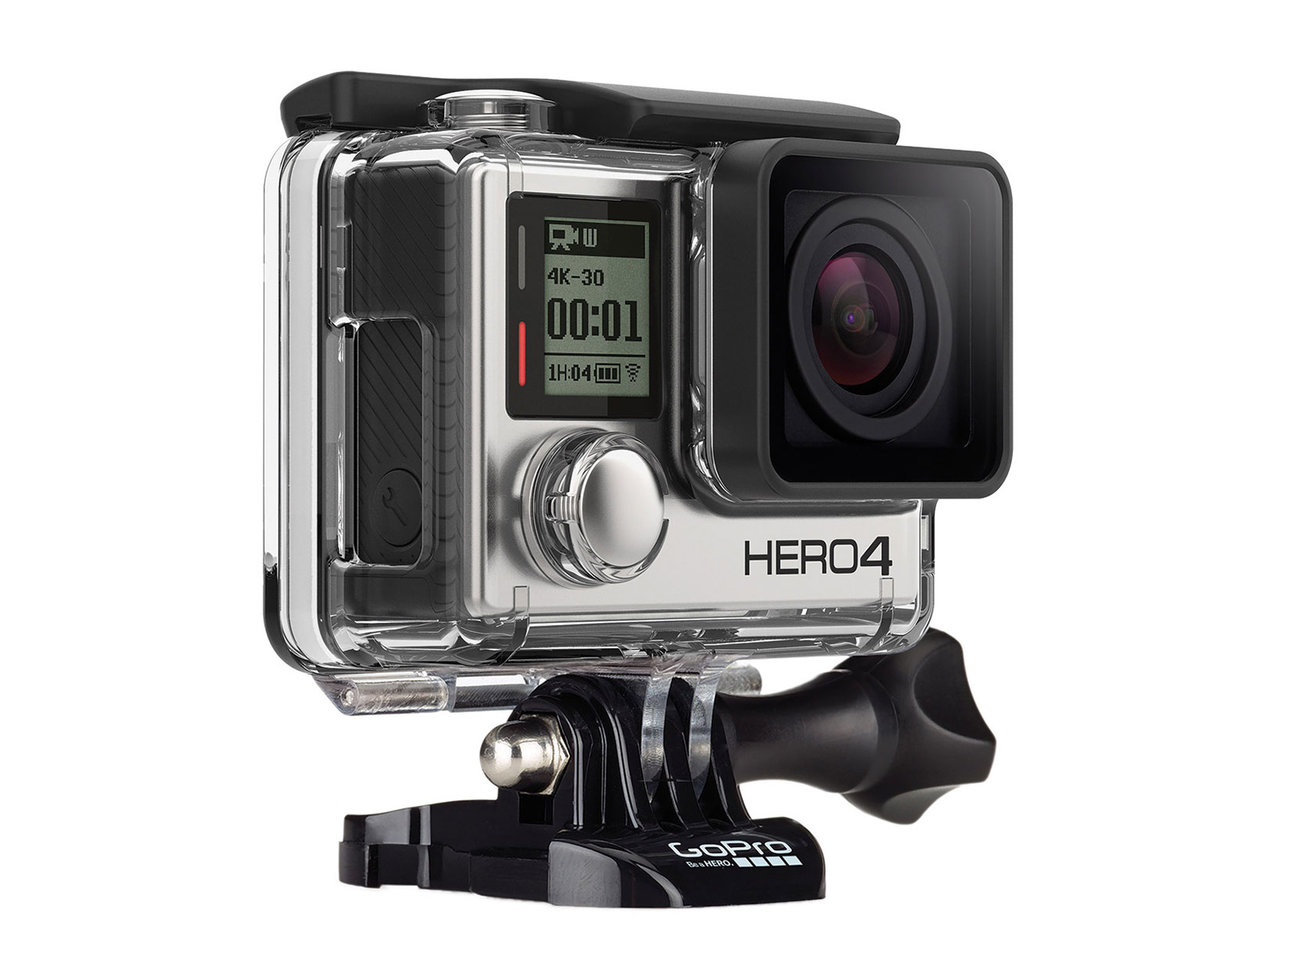 hero4-camera-ADVENTURE-GUIDE1115.jpg